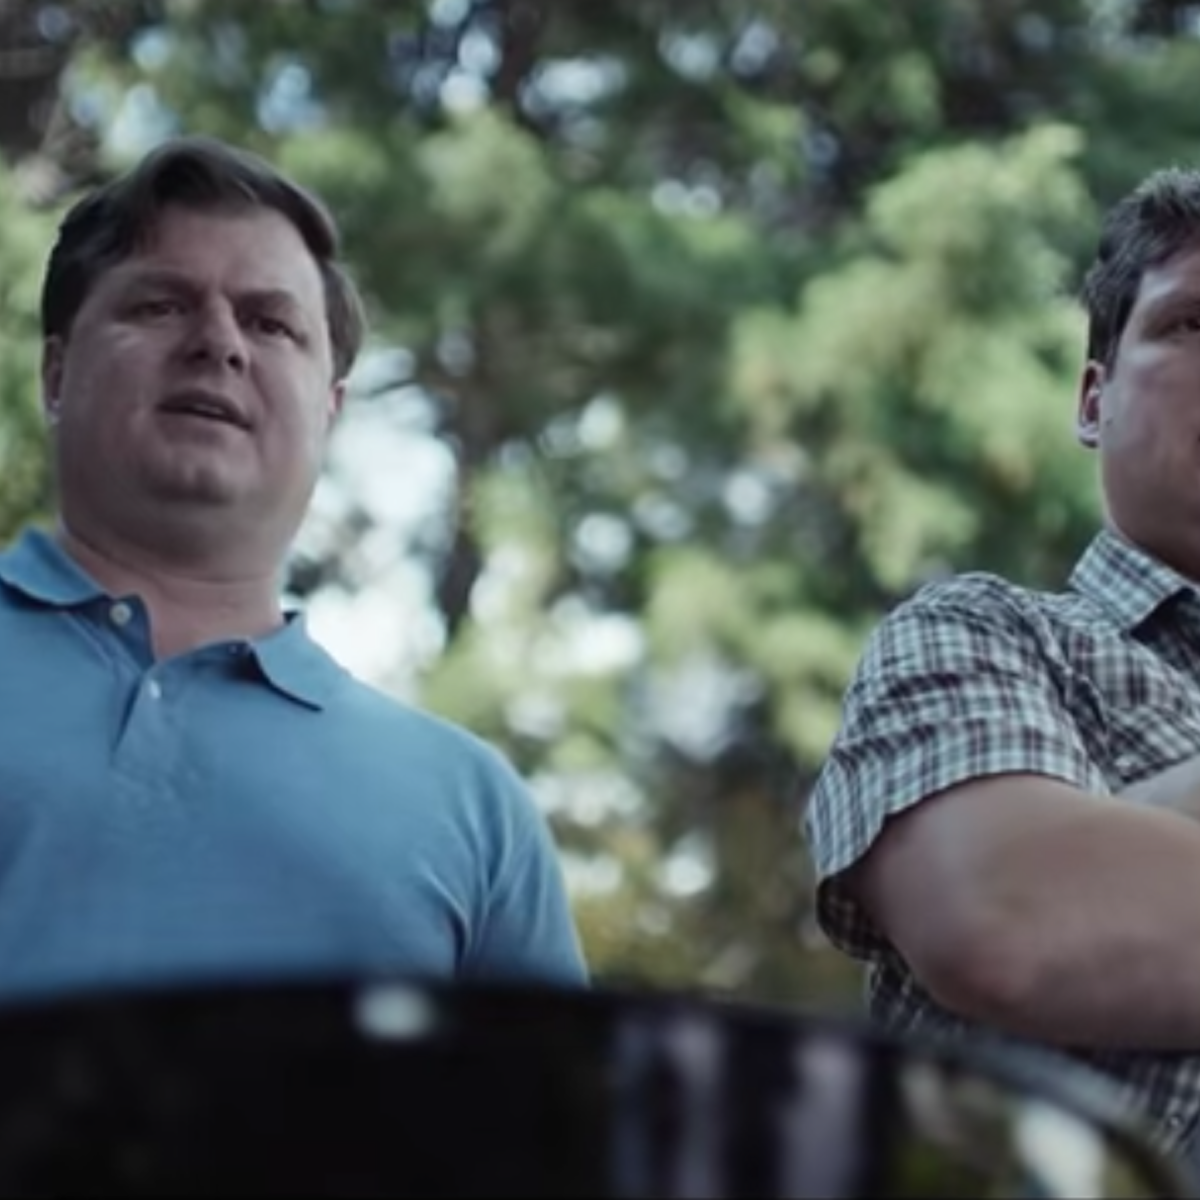 Razor burned: Why Gillette's campaign against toxic